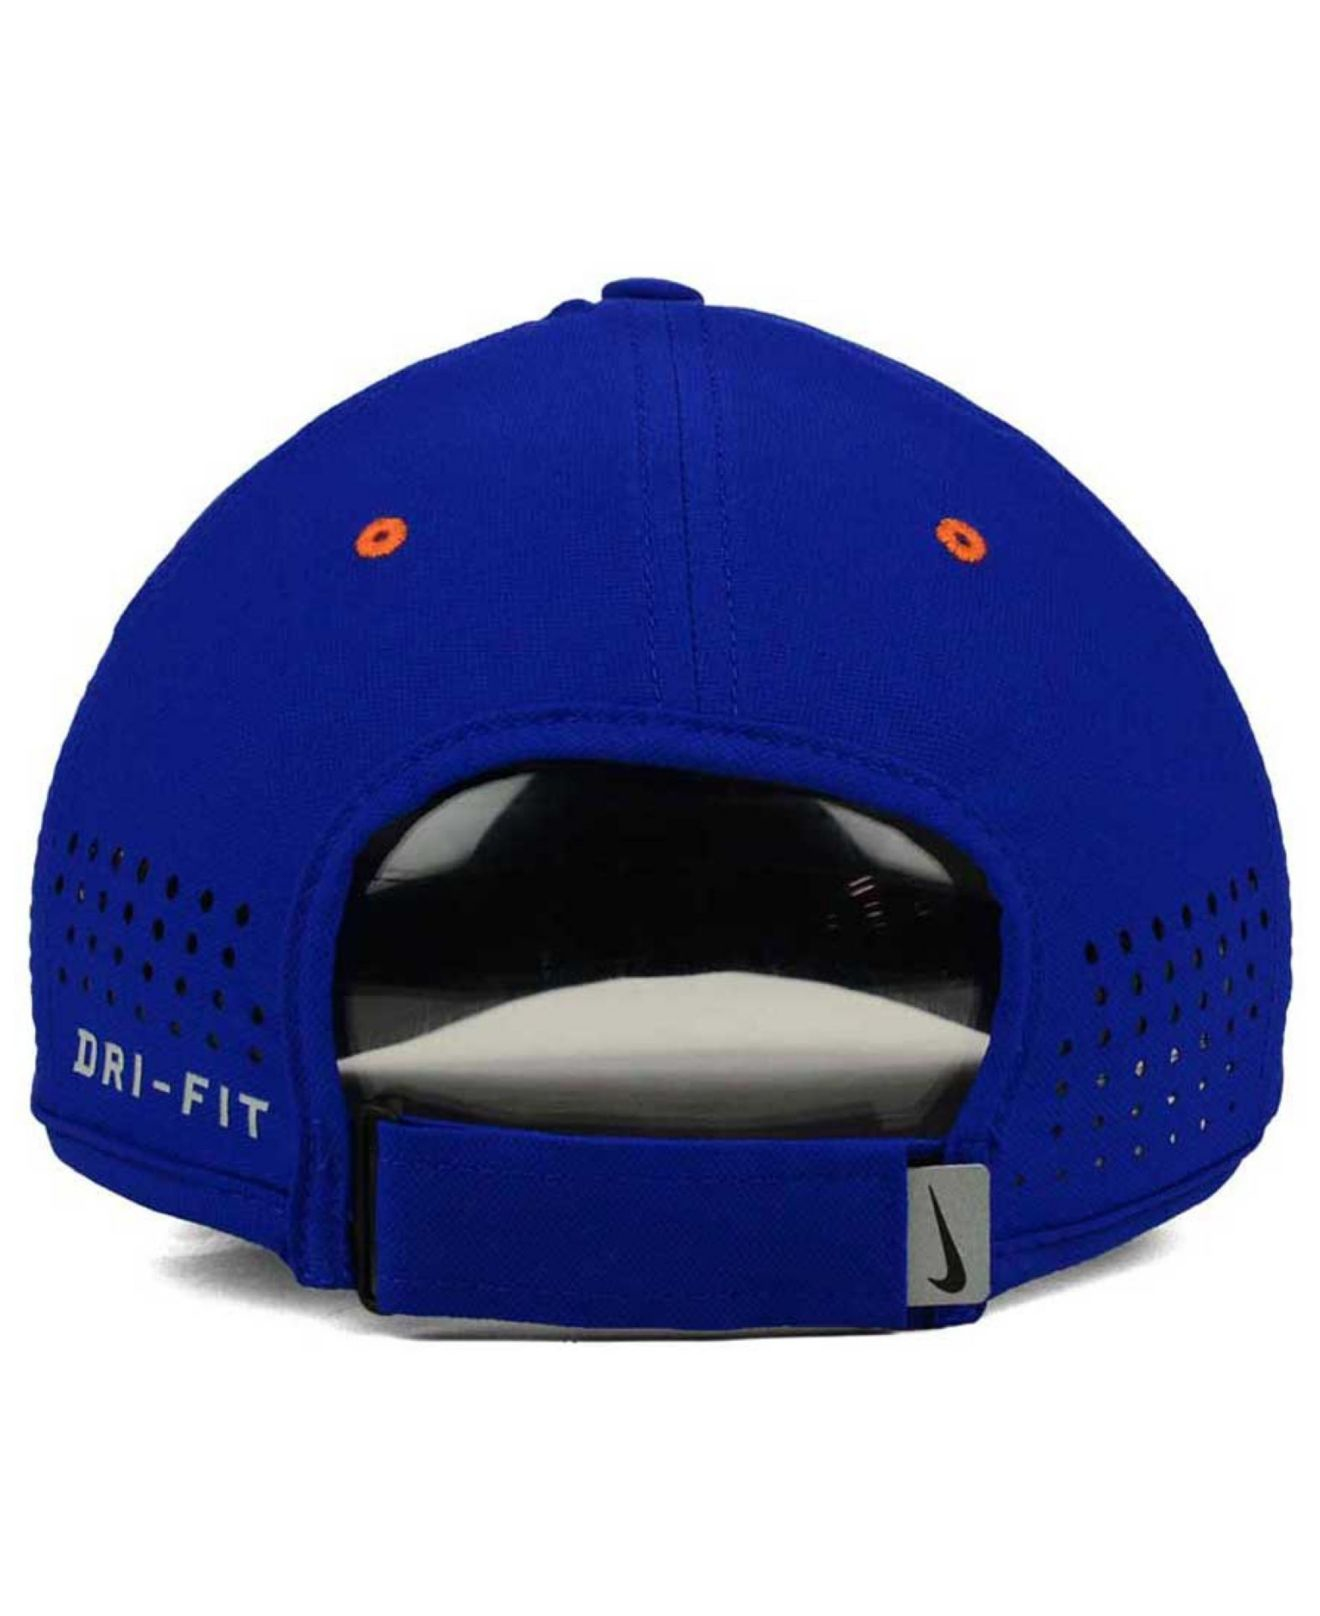 Matty B Hats October 2017